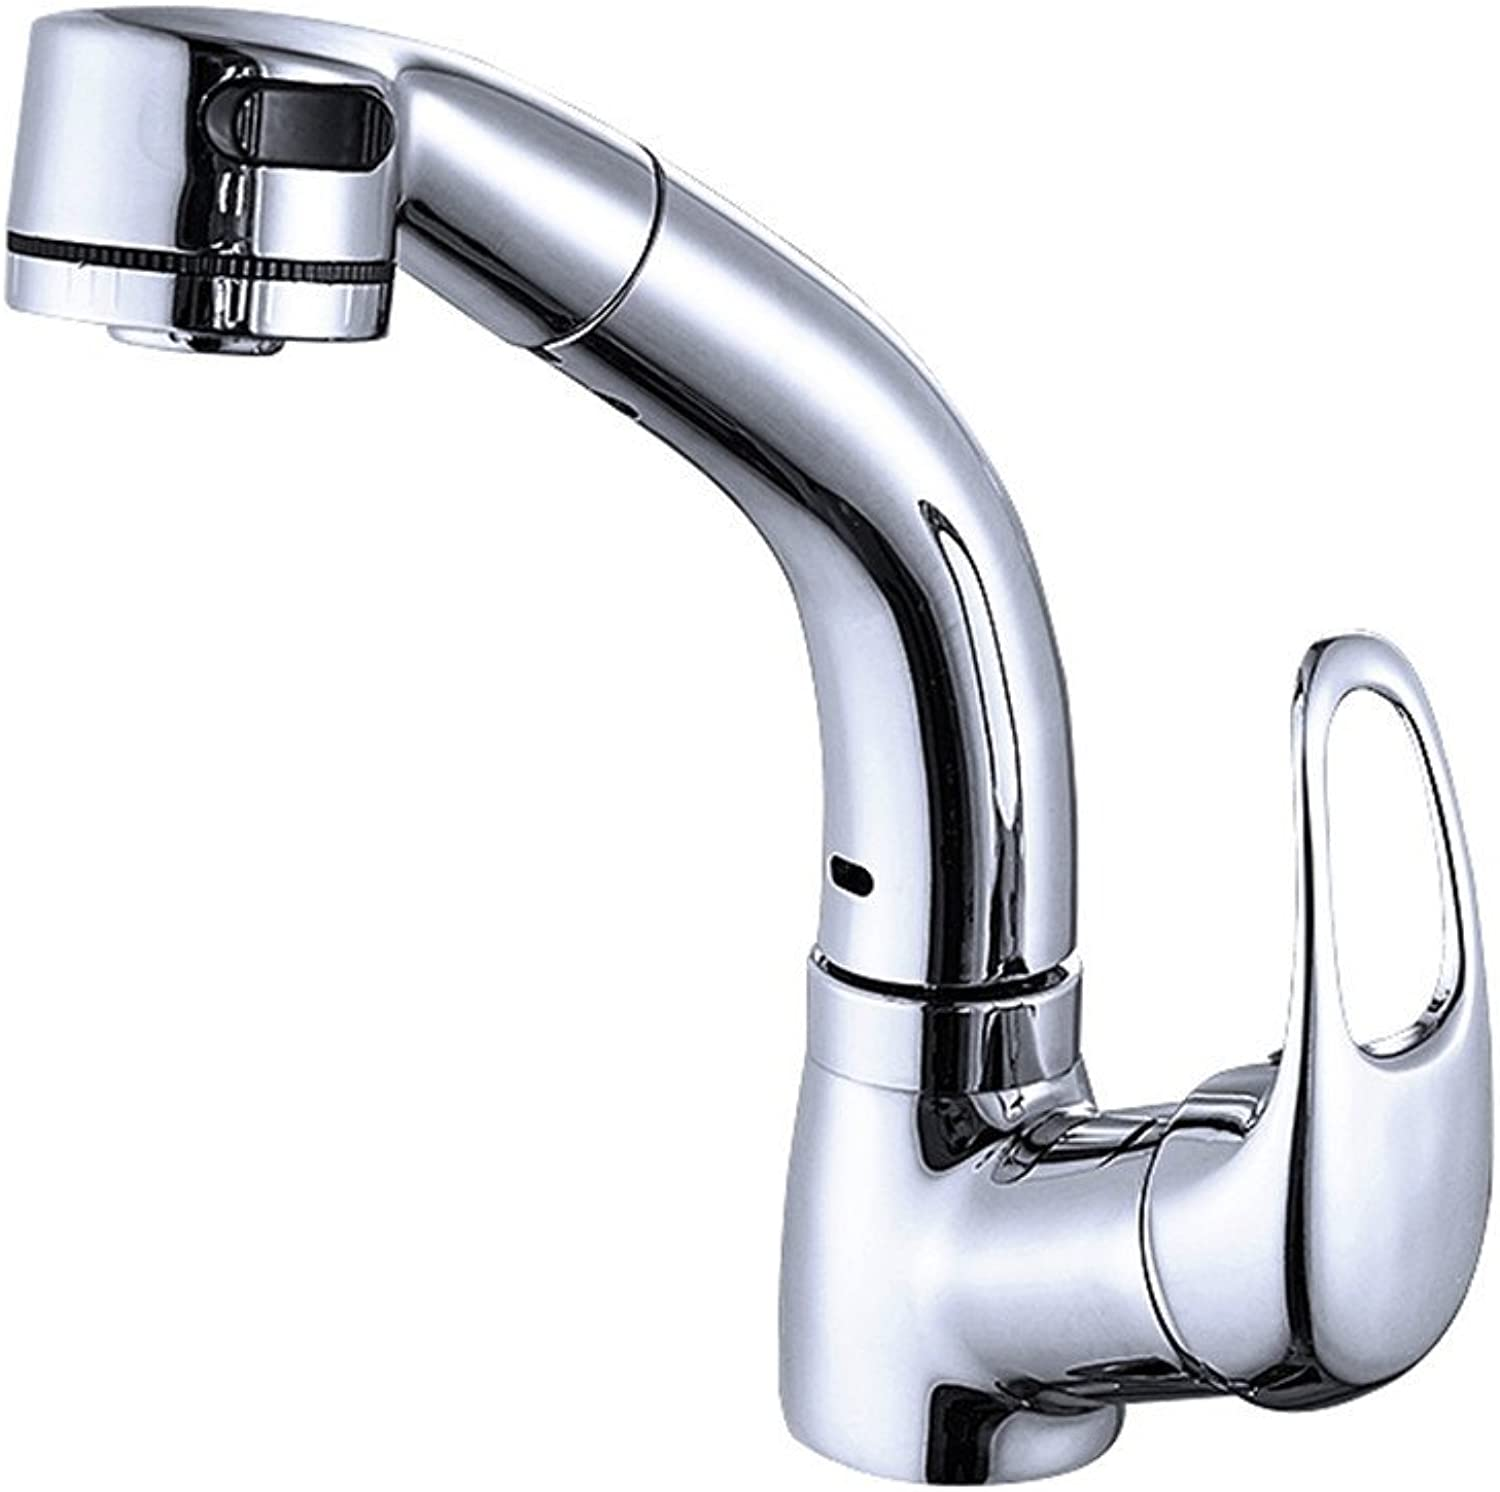 Hlluya Professional Sink Mixer Tap Kitchen Faucet The copper basin and cold water faucet retractable Pull lift swivel head wash basin wash-hand basin 848